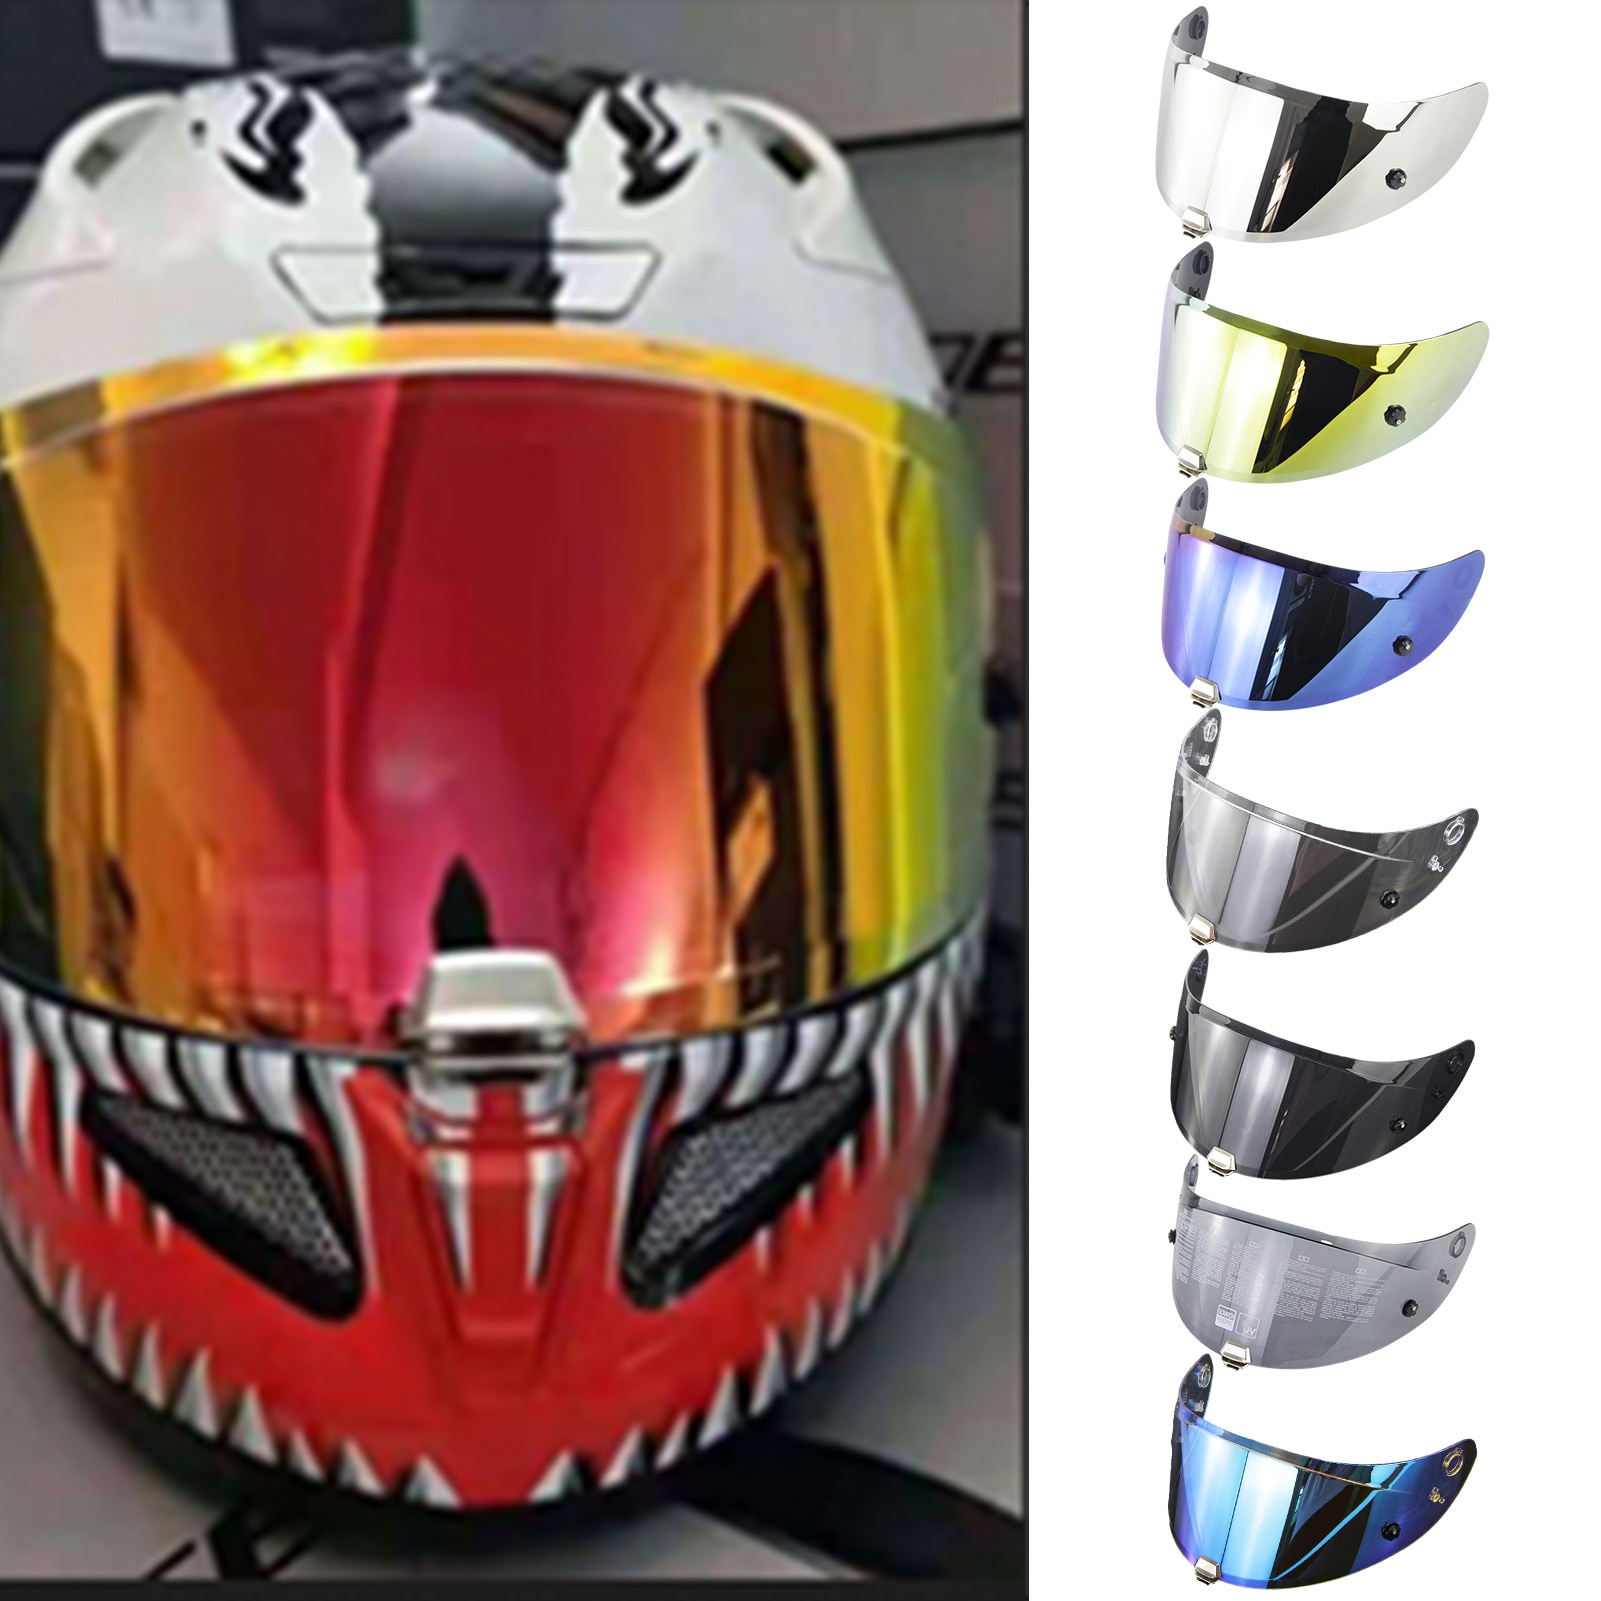 Helmet Visor For HJC RPHA11 RPHA70 Motorcycle Detachable Helmet Glasses Motorbike Helmet Lens Motocross Full Face Visor helmet visor for hjc rpha11 rpha70 motorcycle detachable helmet glasses motorbike helmet lens motocross full face visor